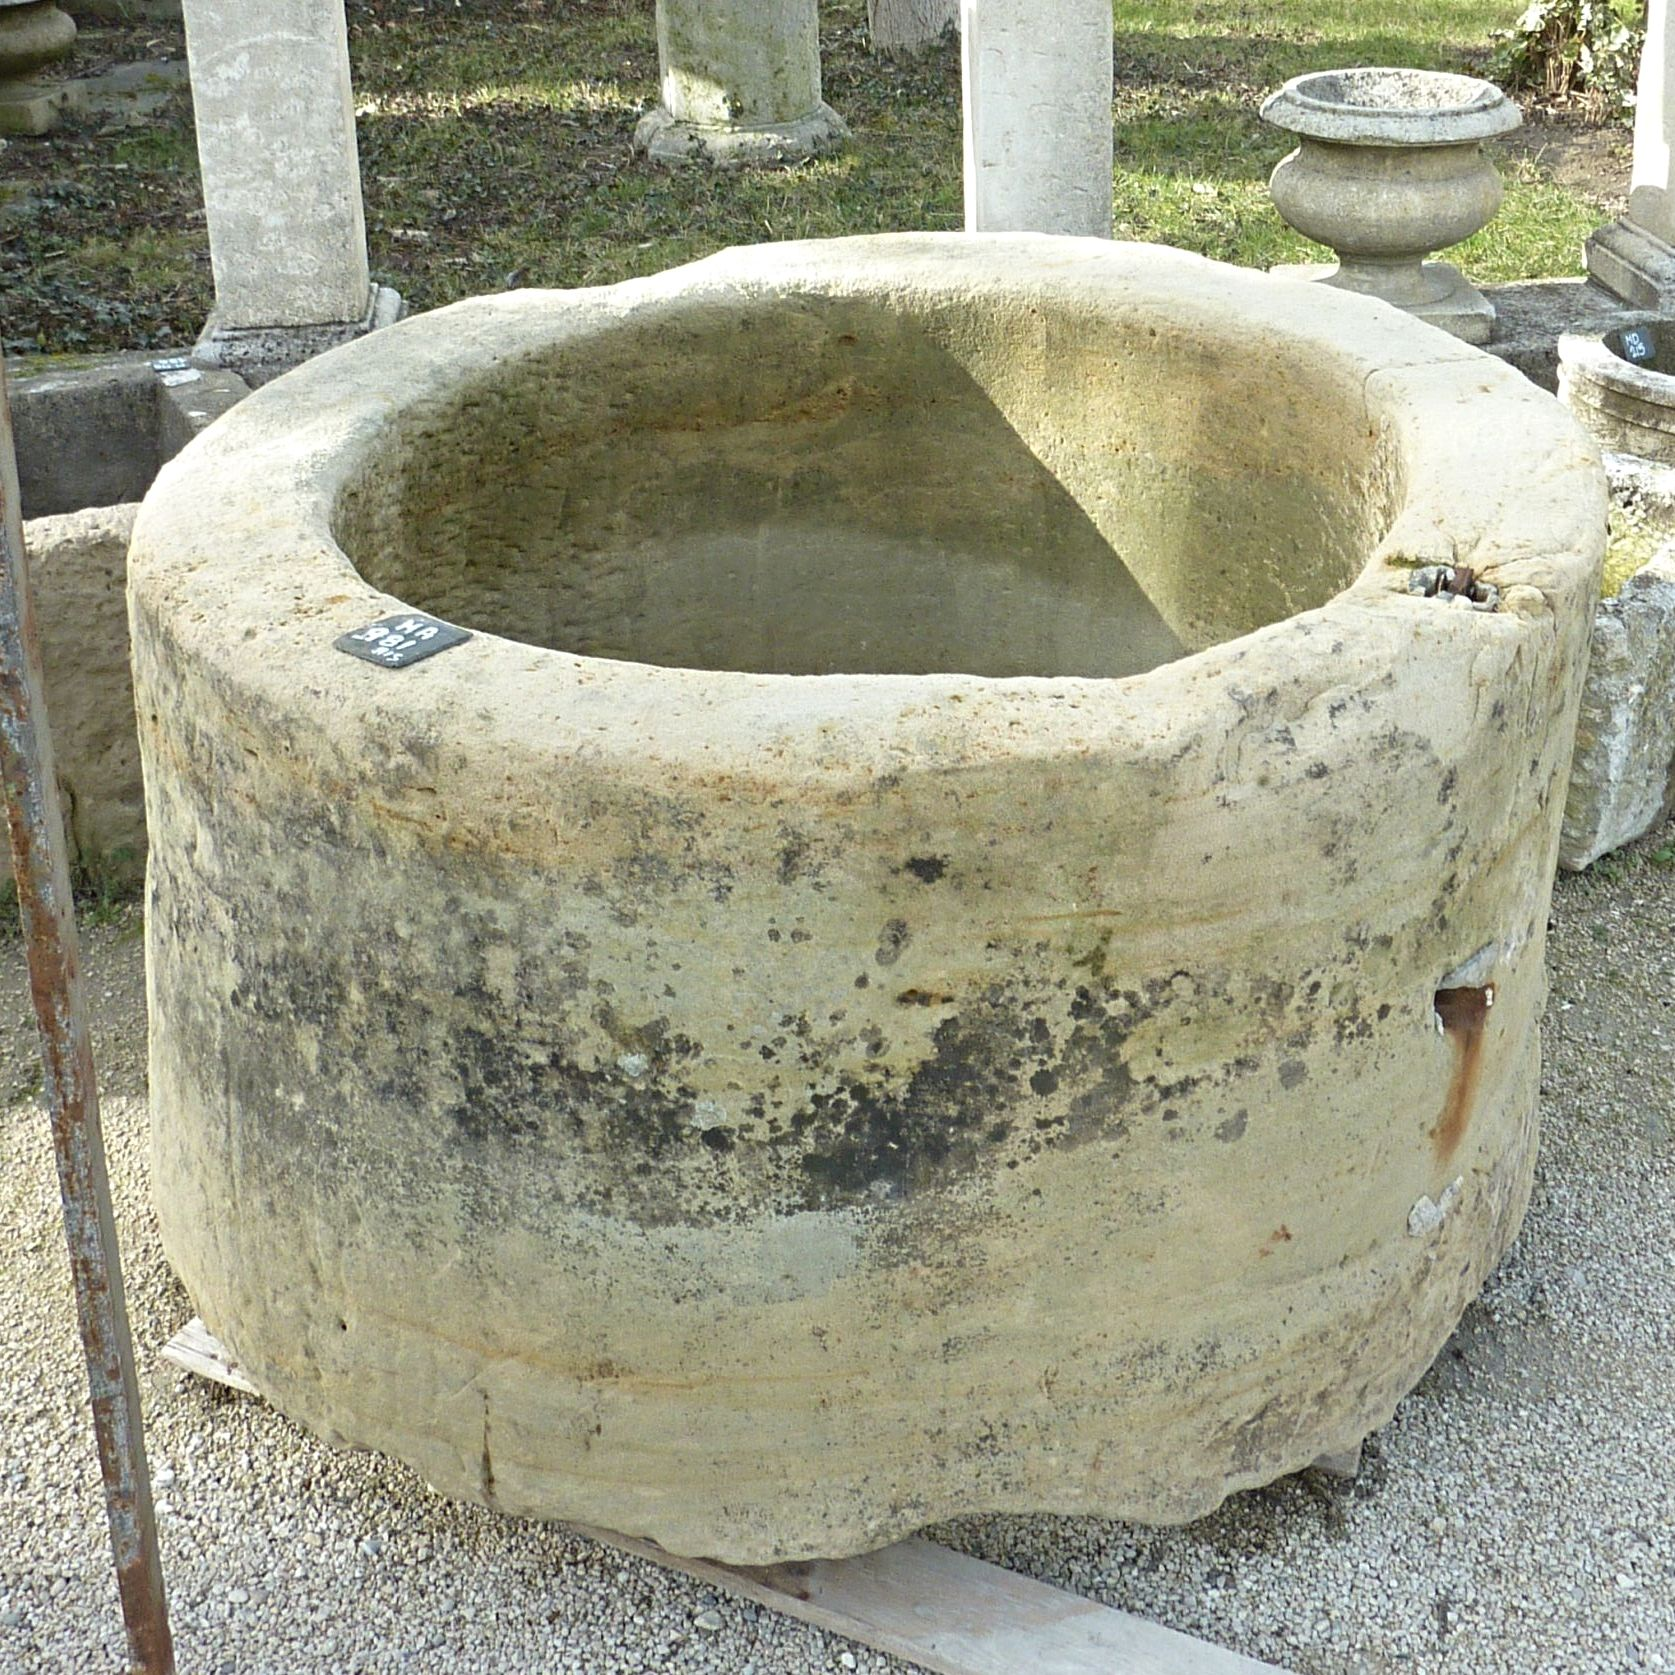 Beautiful old stone well that could become a beautiful stone planter.